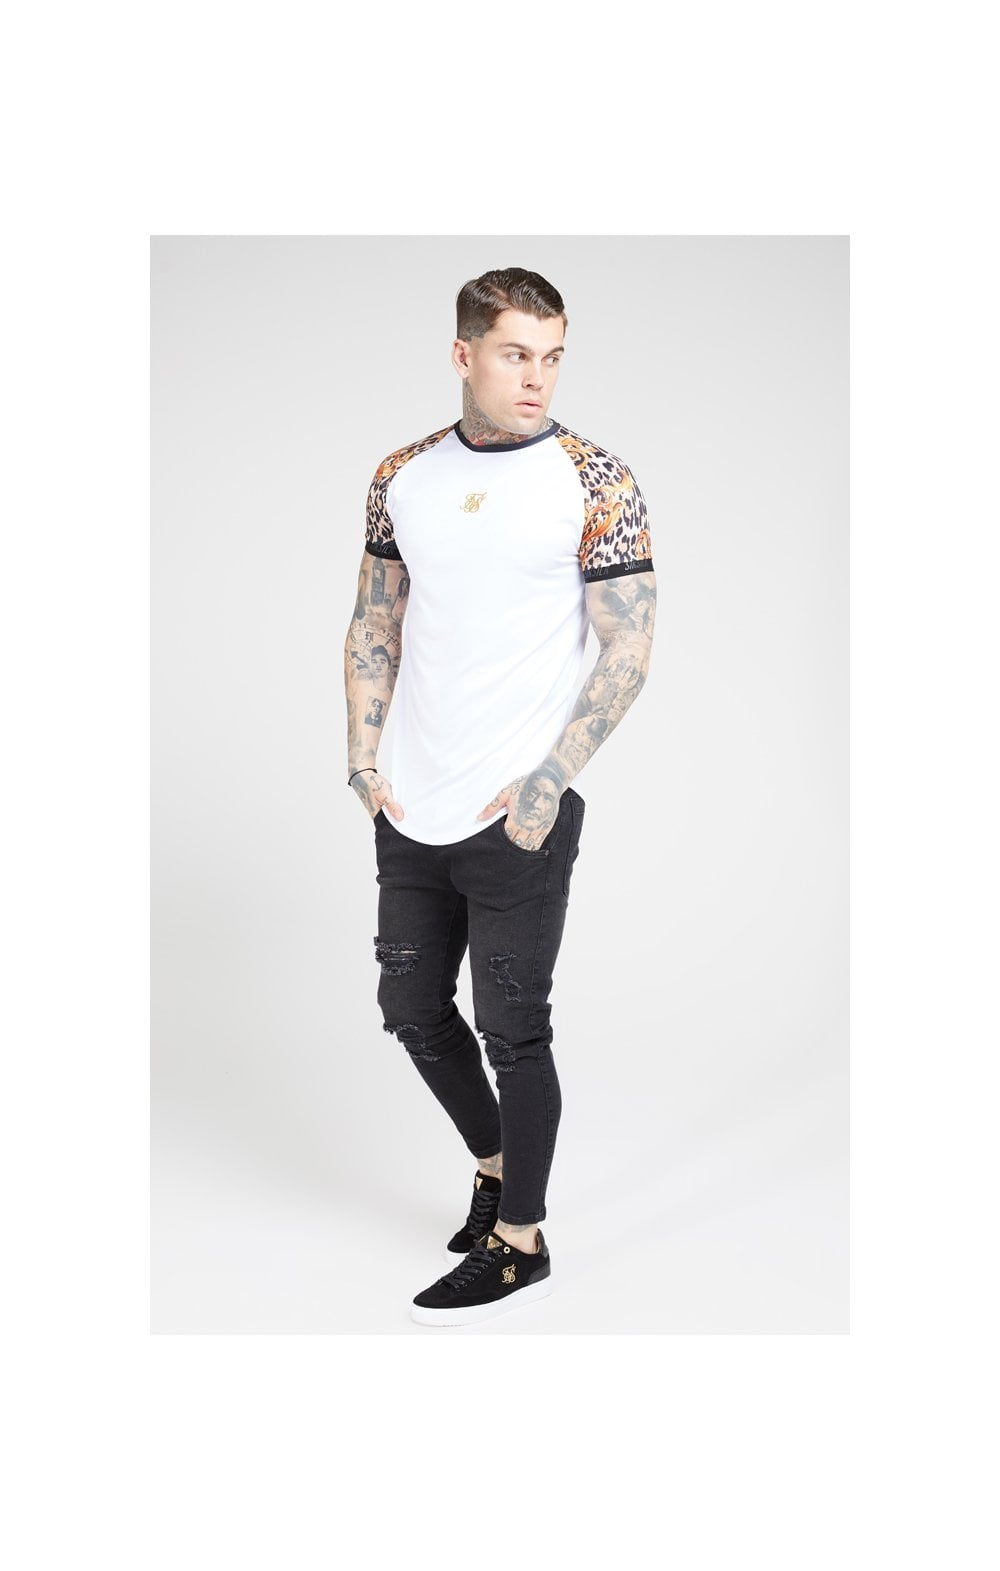 Load image into Gallery viewer, SikSilk S/S Curved Hem Raglan Tech Tee - White & Floral Leopard (3)